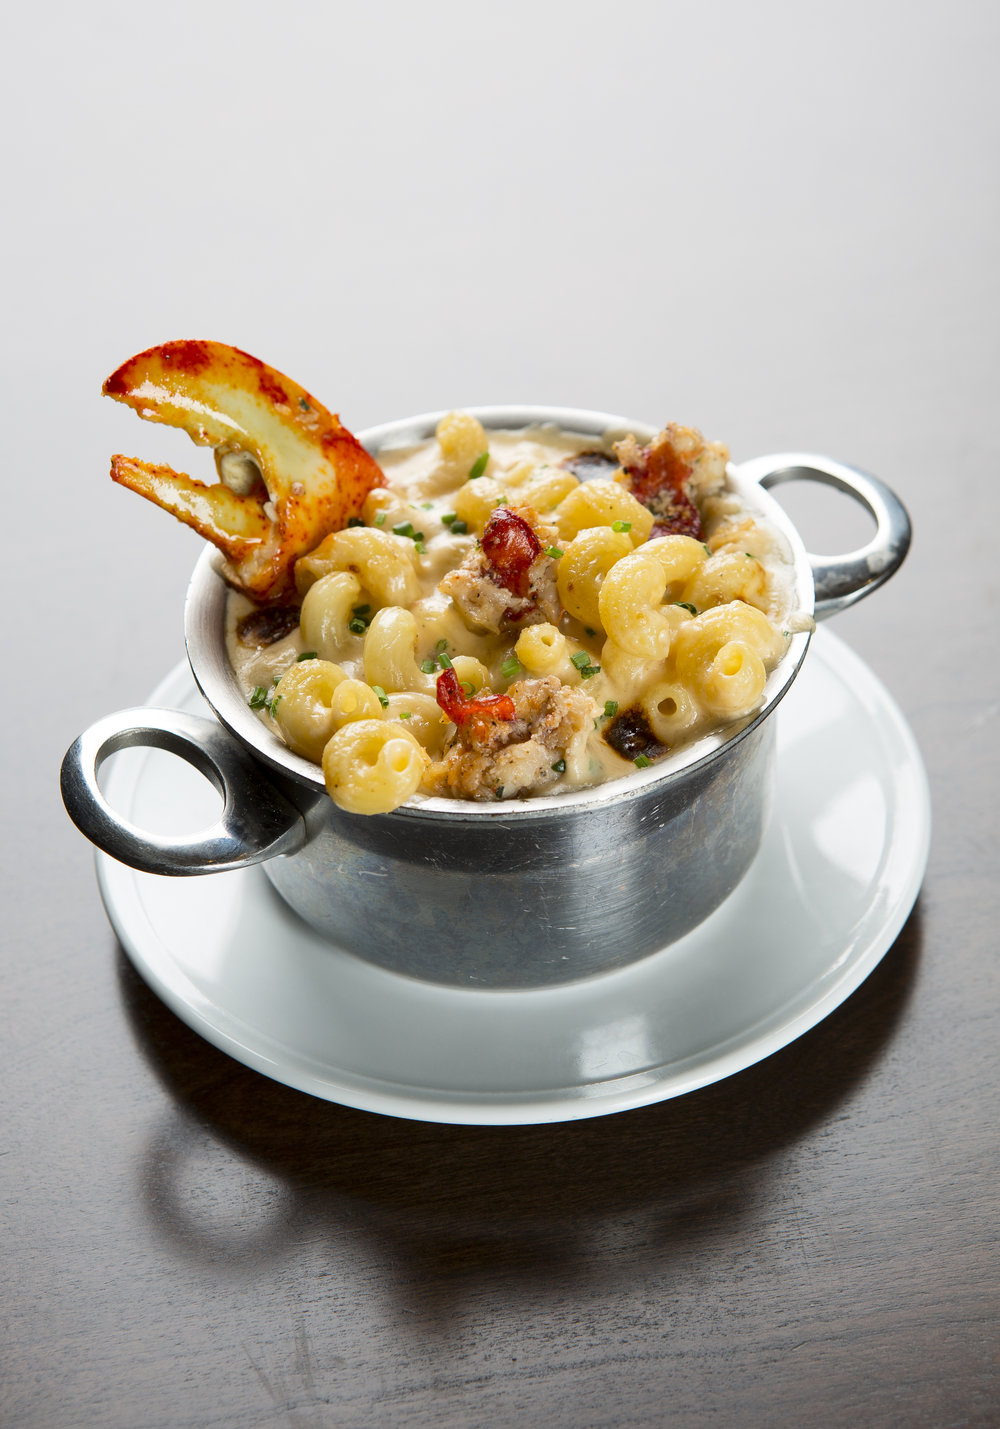 MB Steak_LobsterMacandCheese_JimDecker.jpg